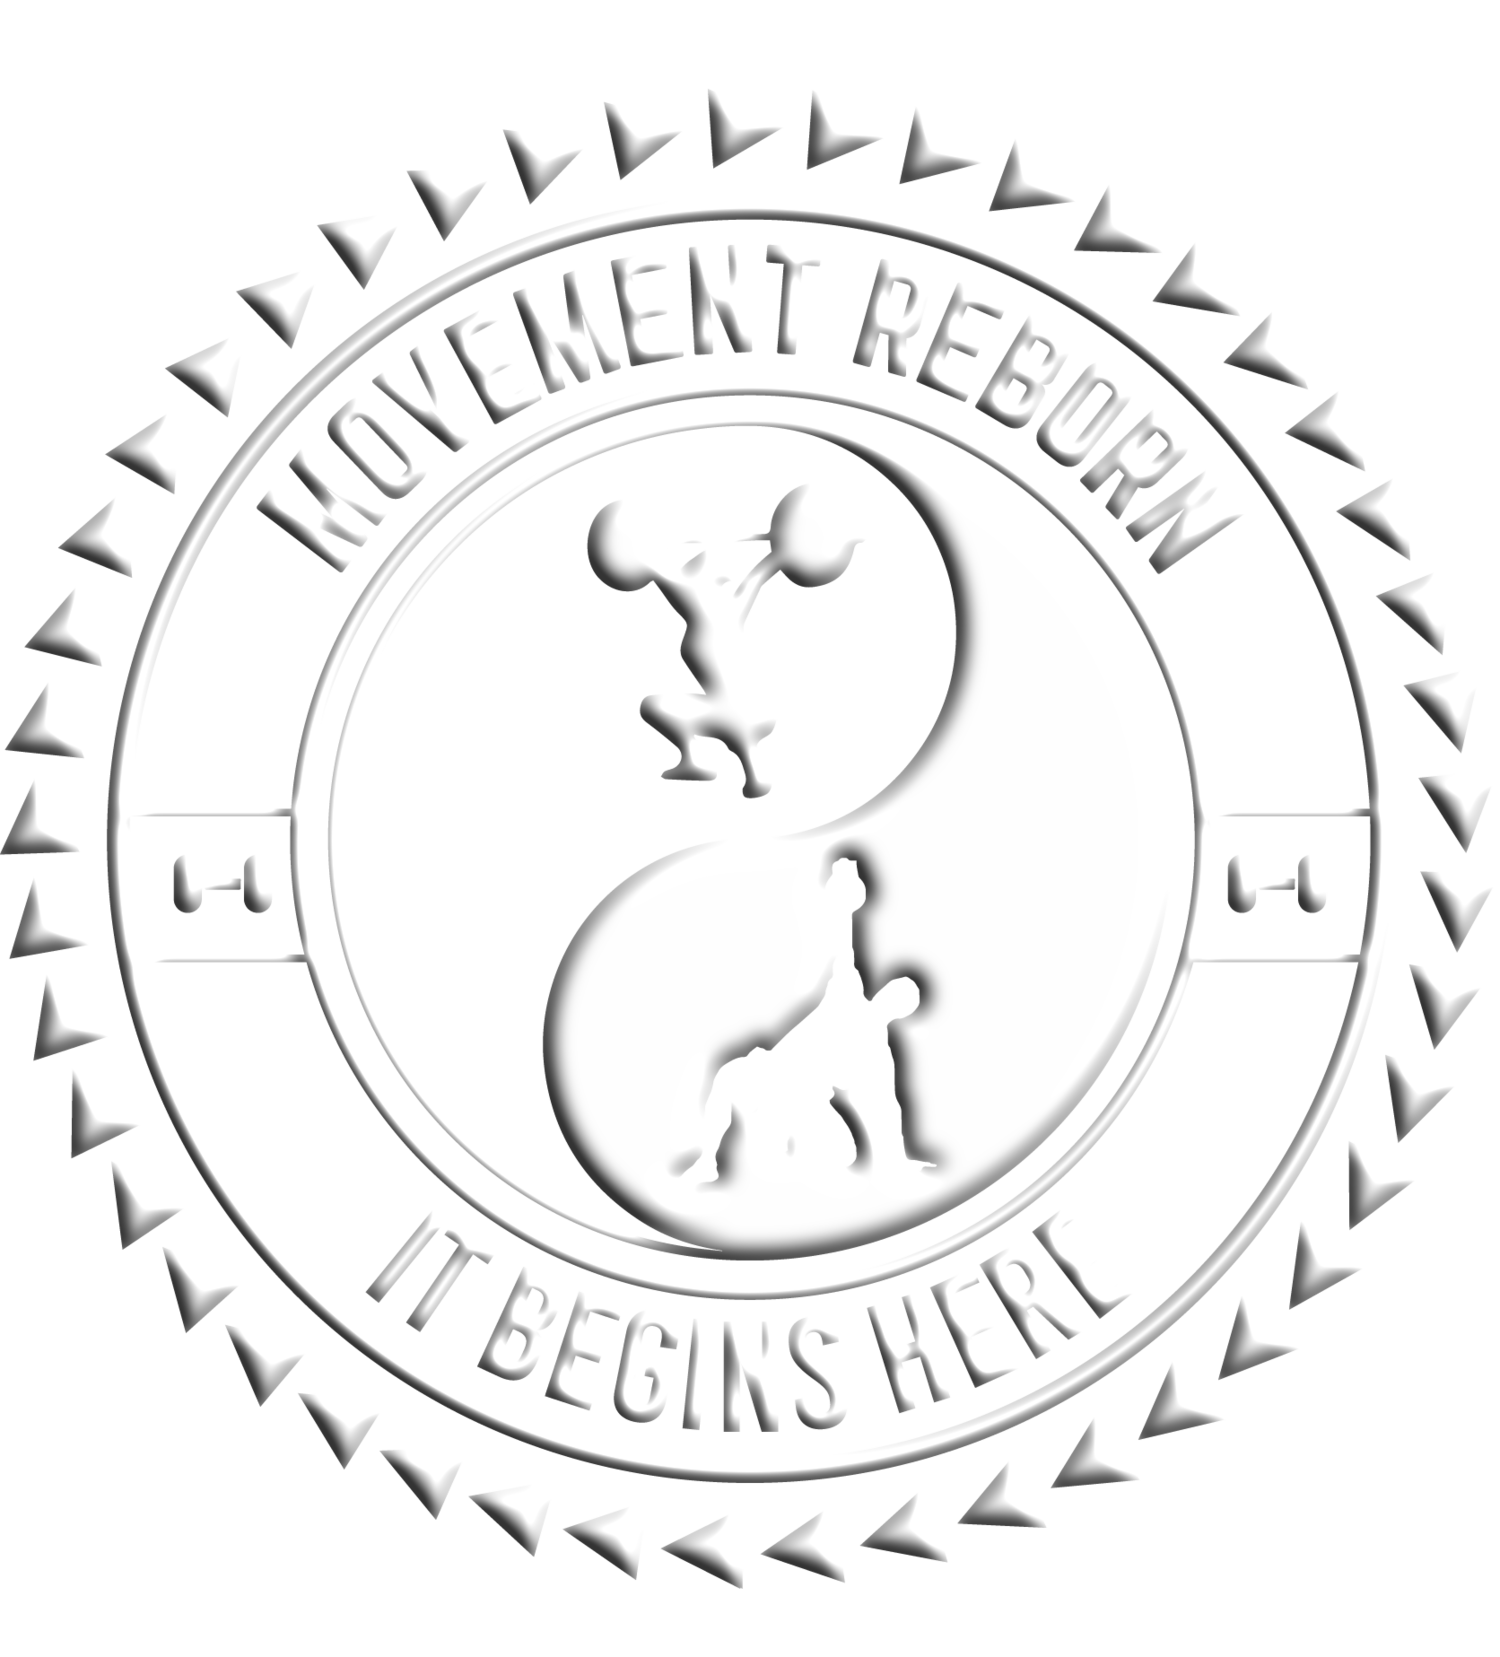 Movement Reborn